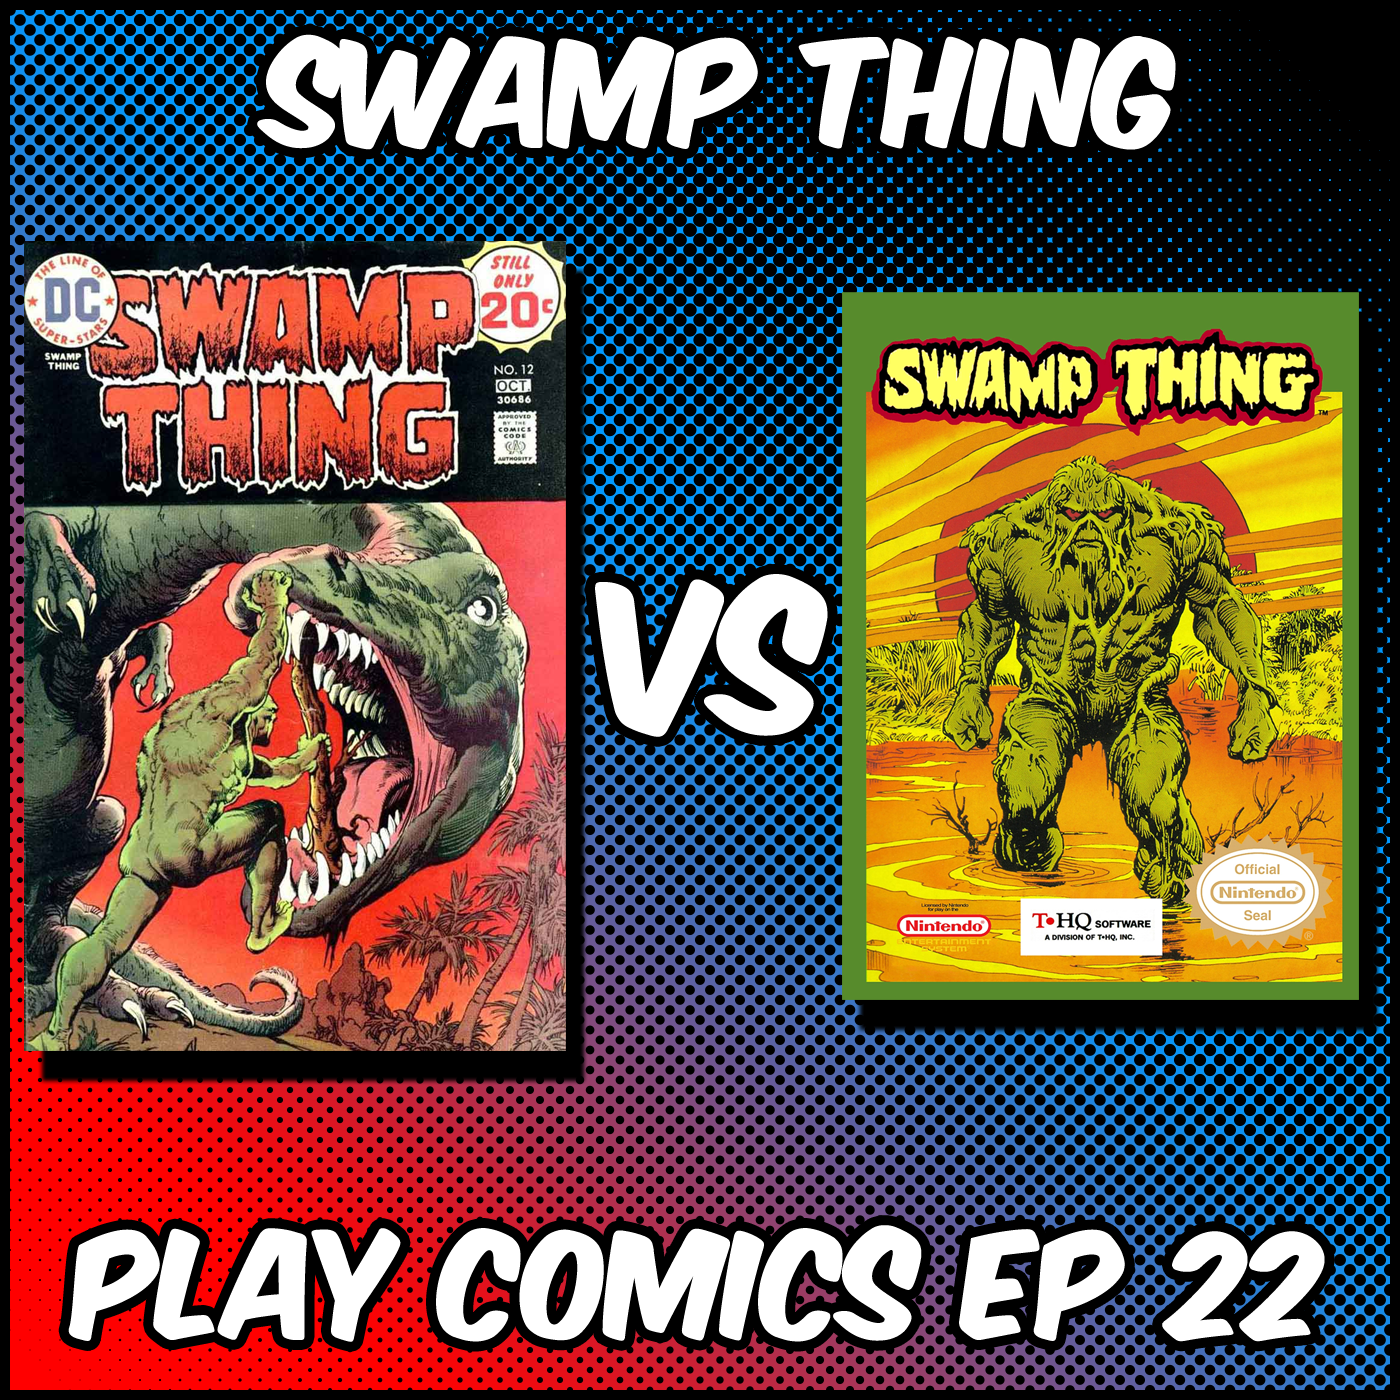 Swamp Thing with Tyler Kirby